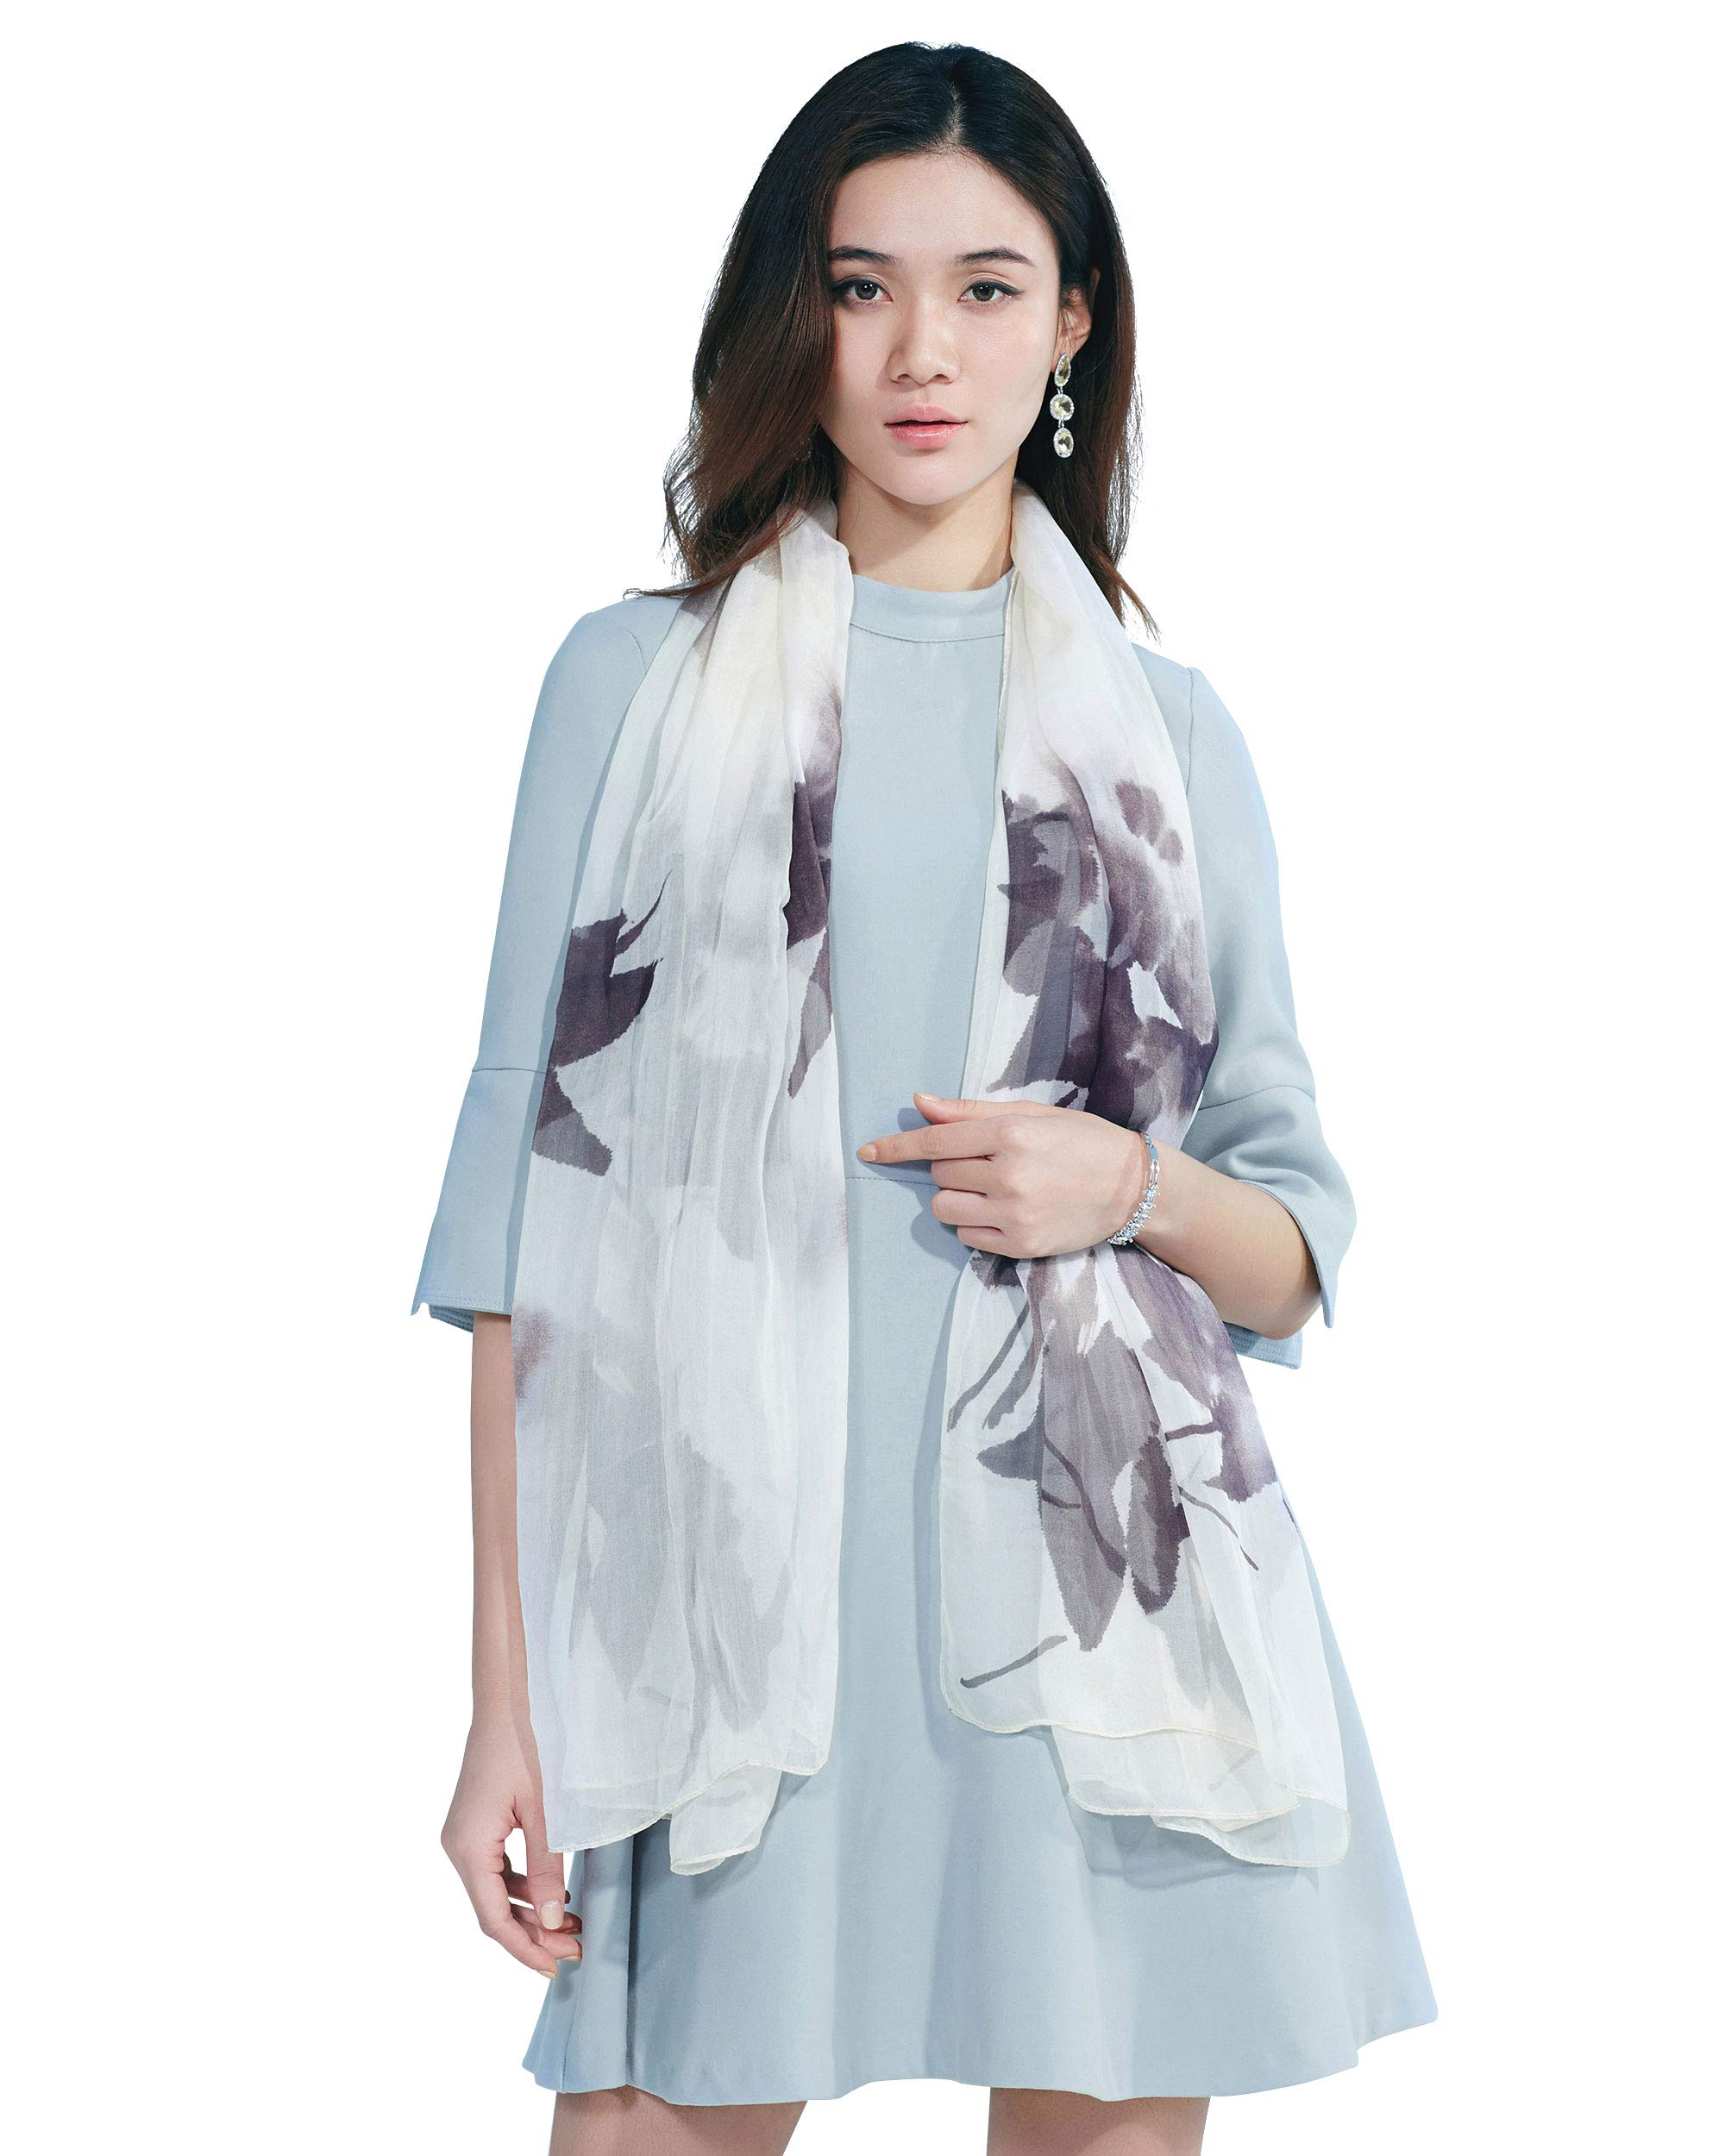 STORY OF SHANGHAI Womens 100% Mulberry Silk Head Scarf For Hair Ladies Floral And Butterfly Scarf,black flower,One Size